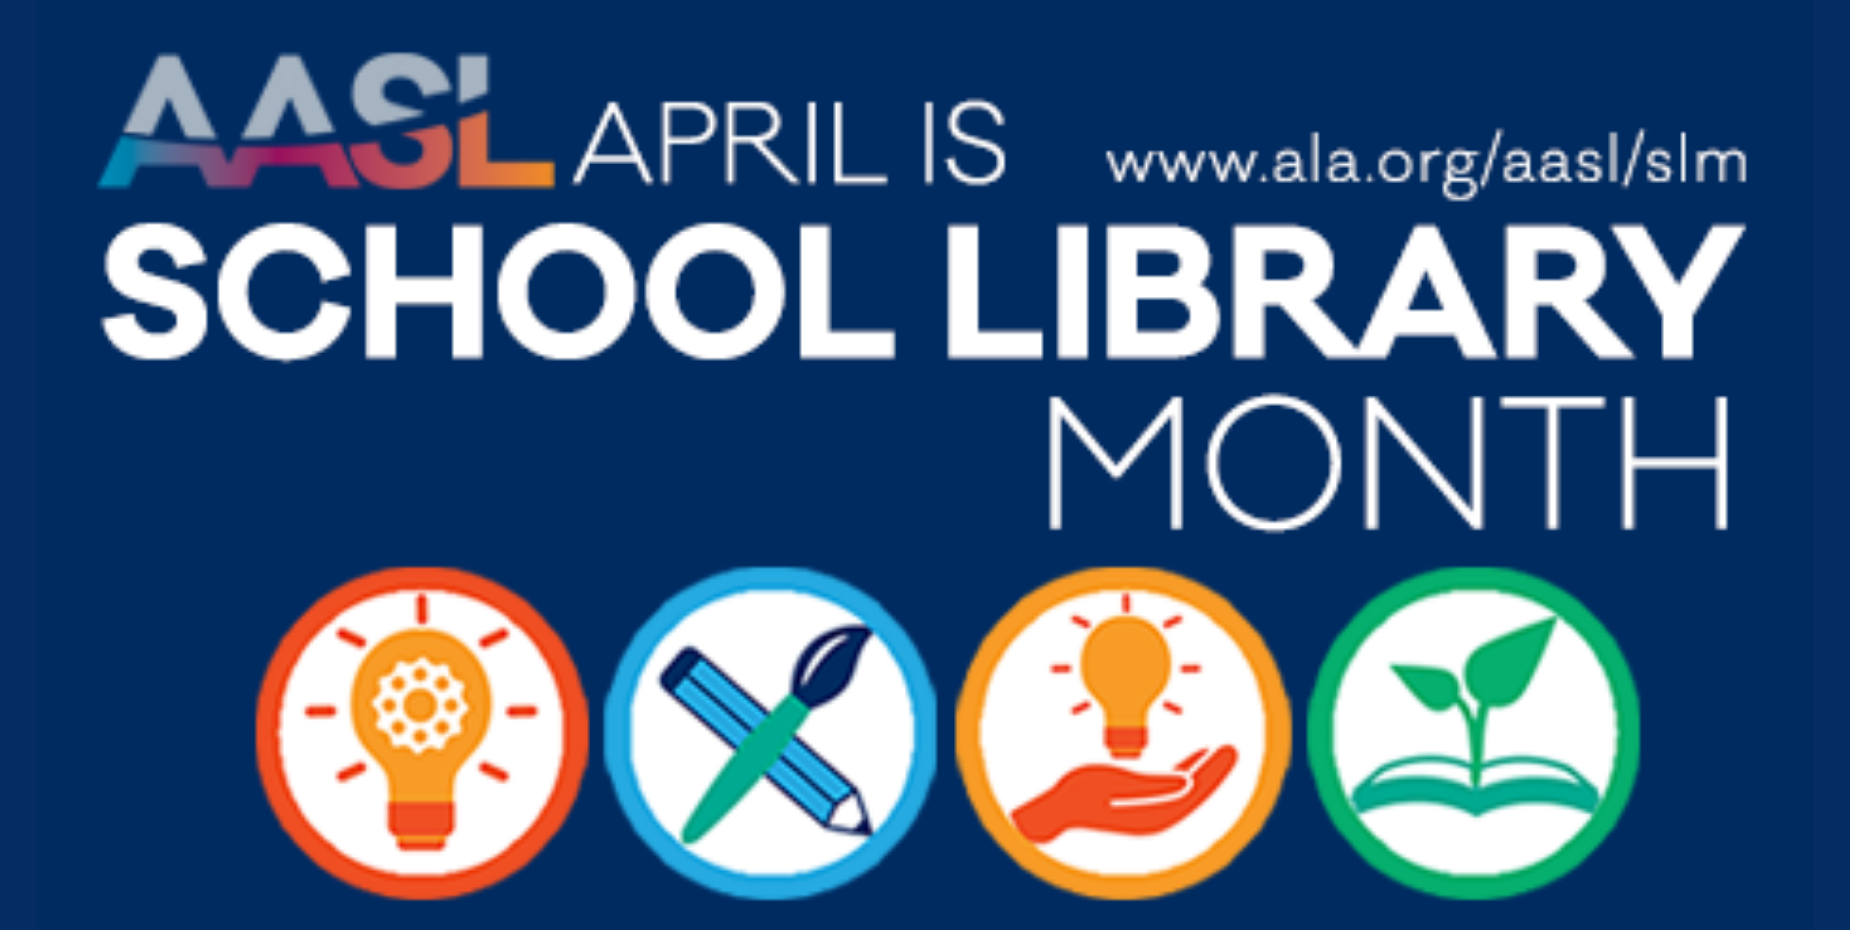 school library month.